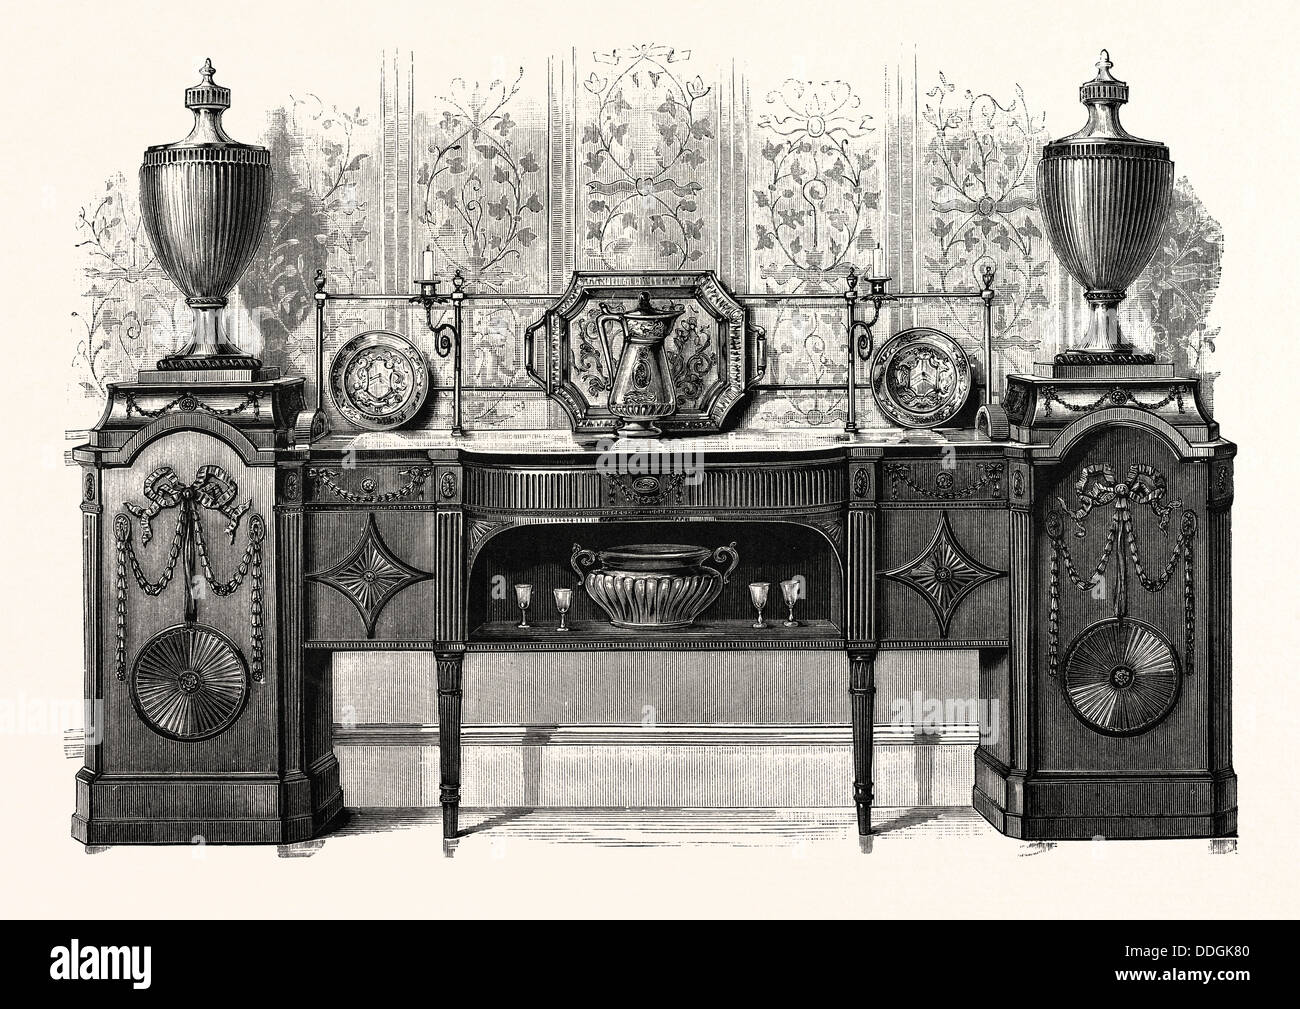 Sideboard by Sheraton, in the possession of W.T. Walters, Esq., Baltimore, U.S.A. - Stock Image